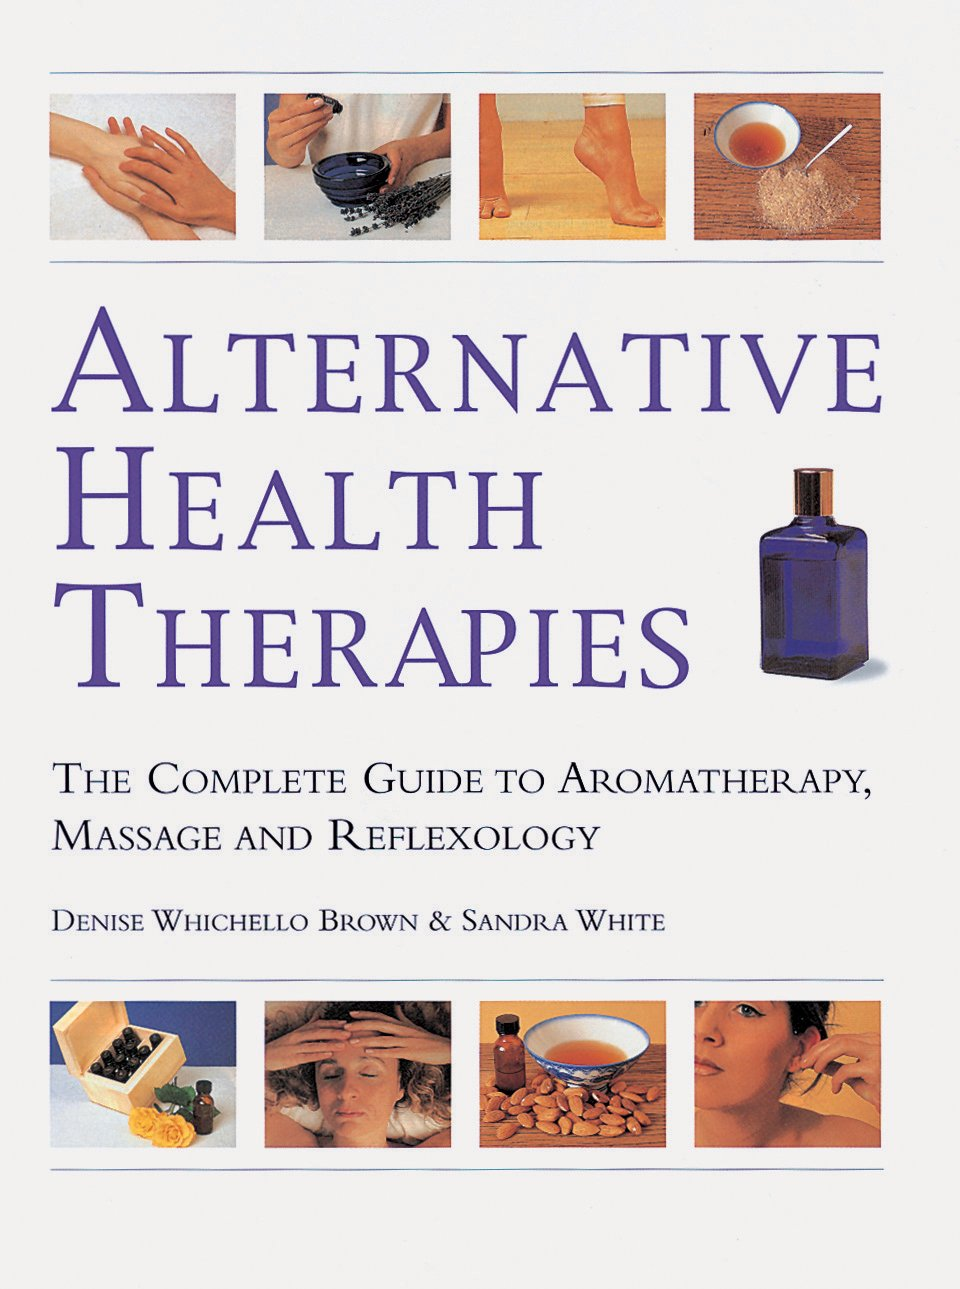 Alternative Health Therapies: The Complete Guide to Aromatherapy, Reflexology, and Massage PDF